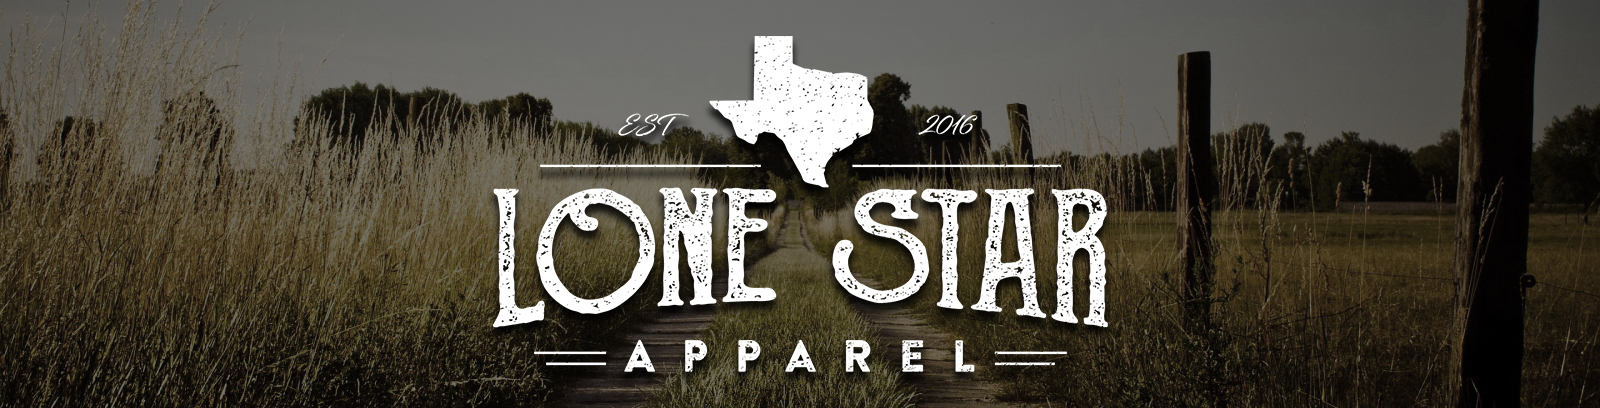 Lone Star Apparel